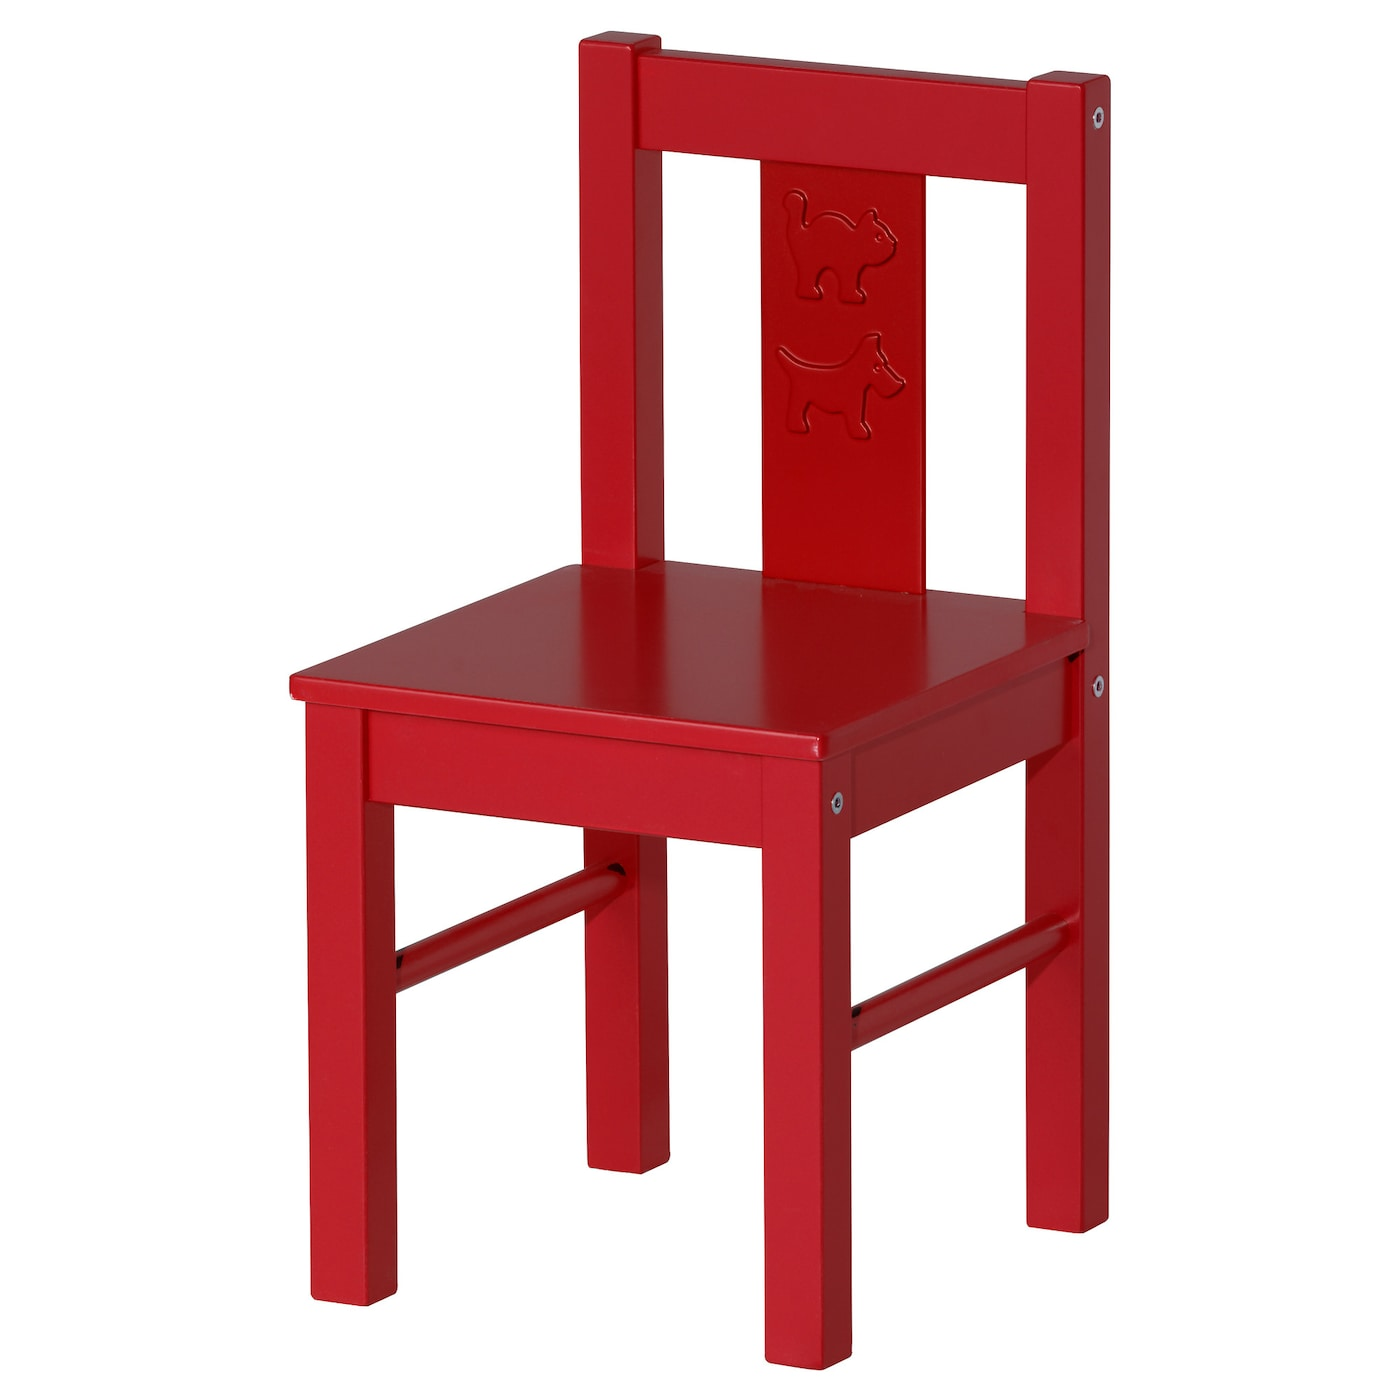 KRITTER Children s chair Red IKEA